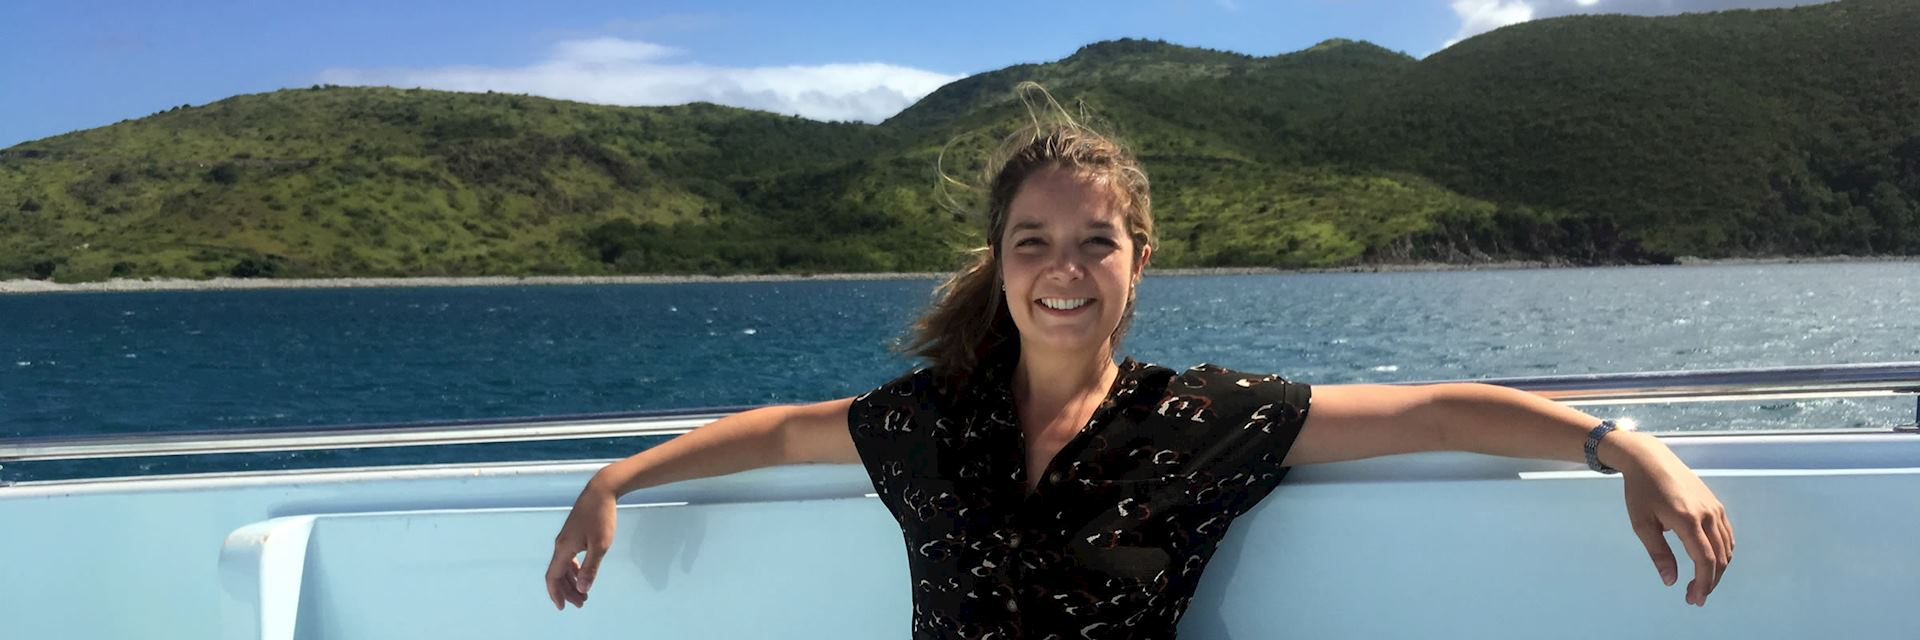 Louise on a boat transfer from Saint Kitts to Nevis